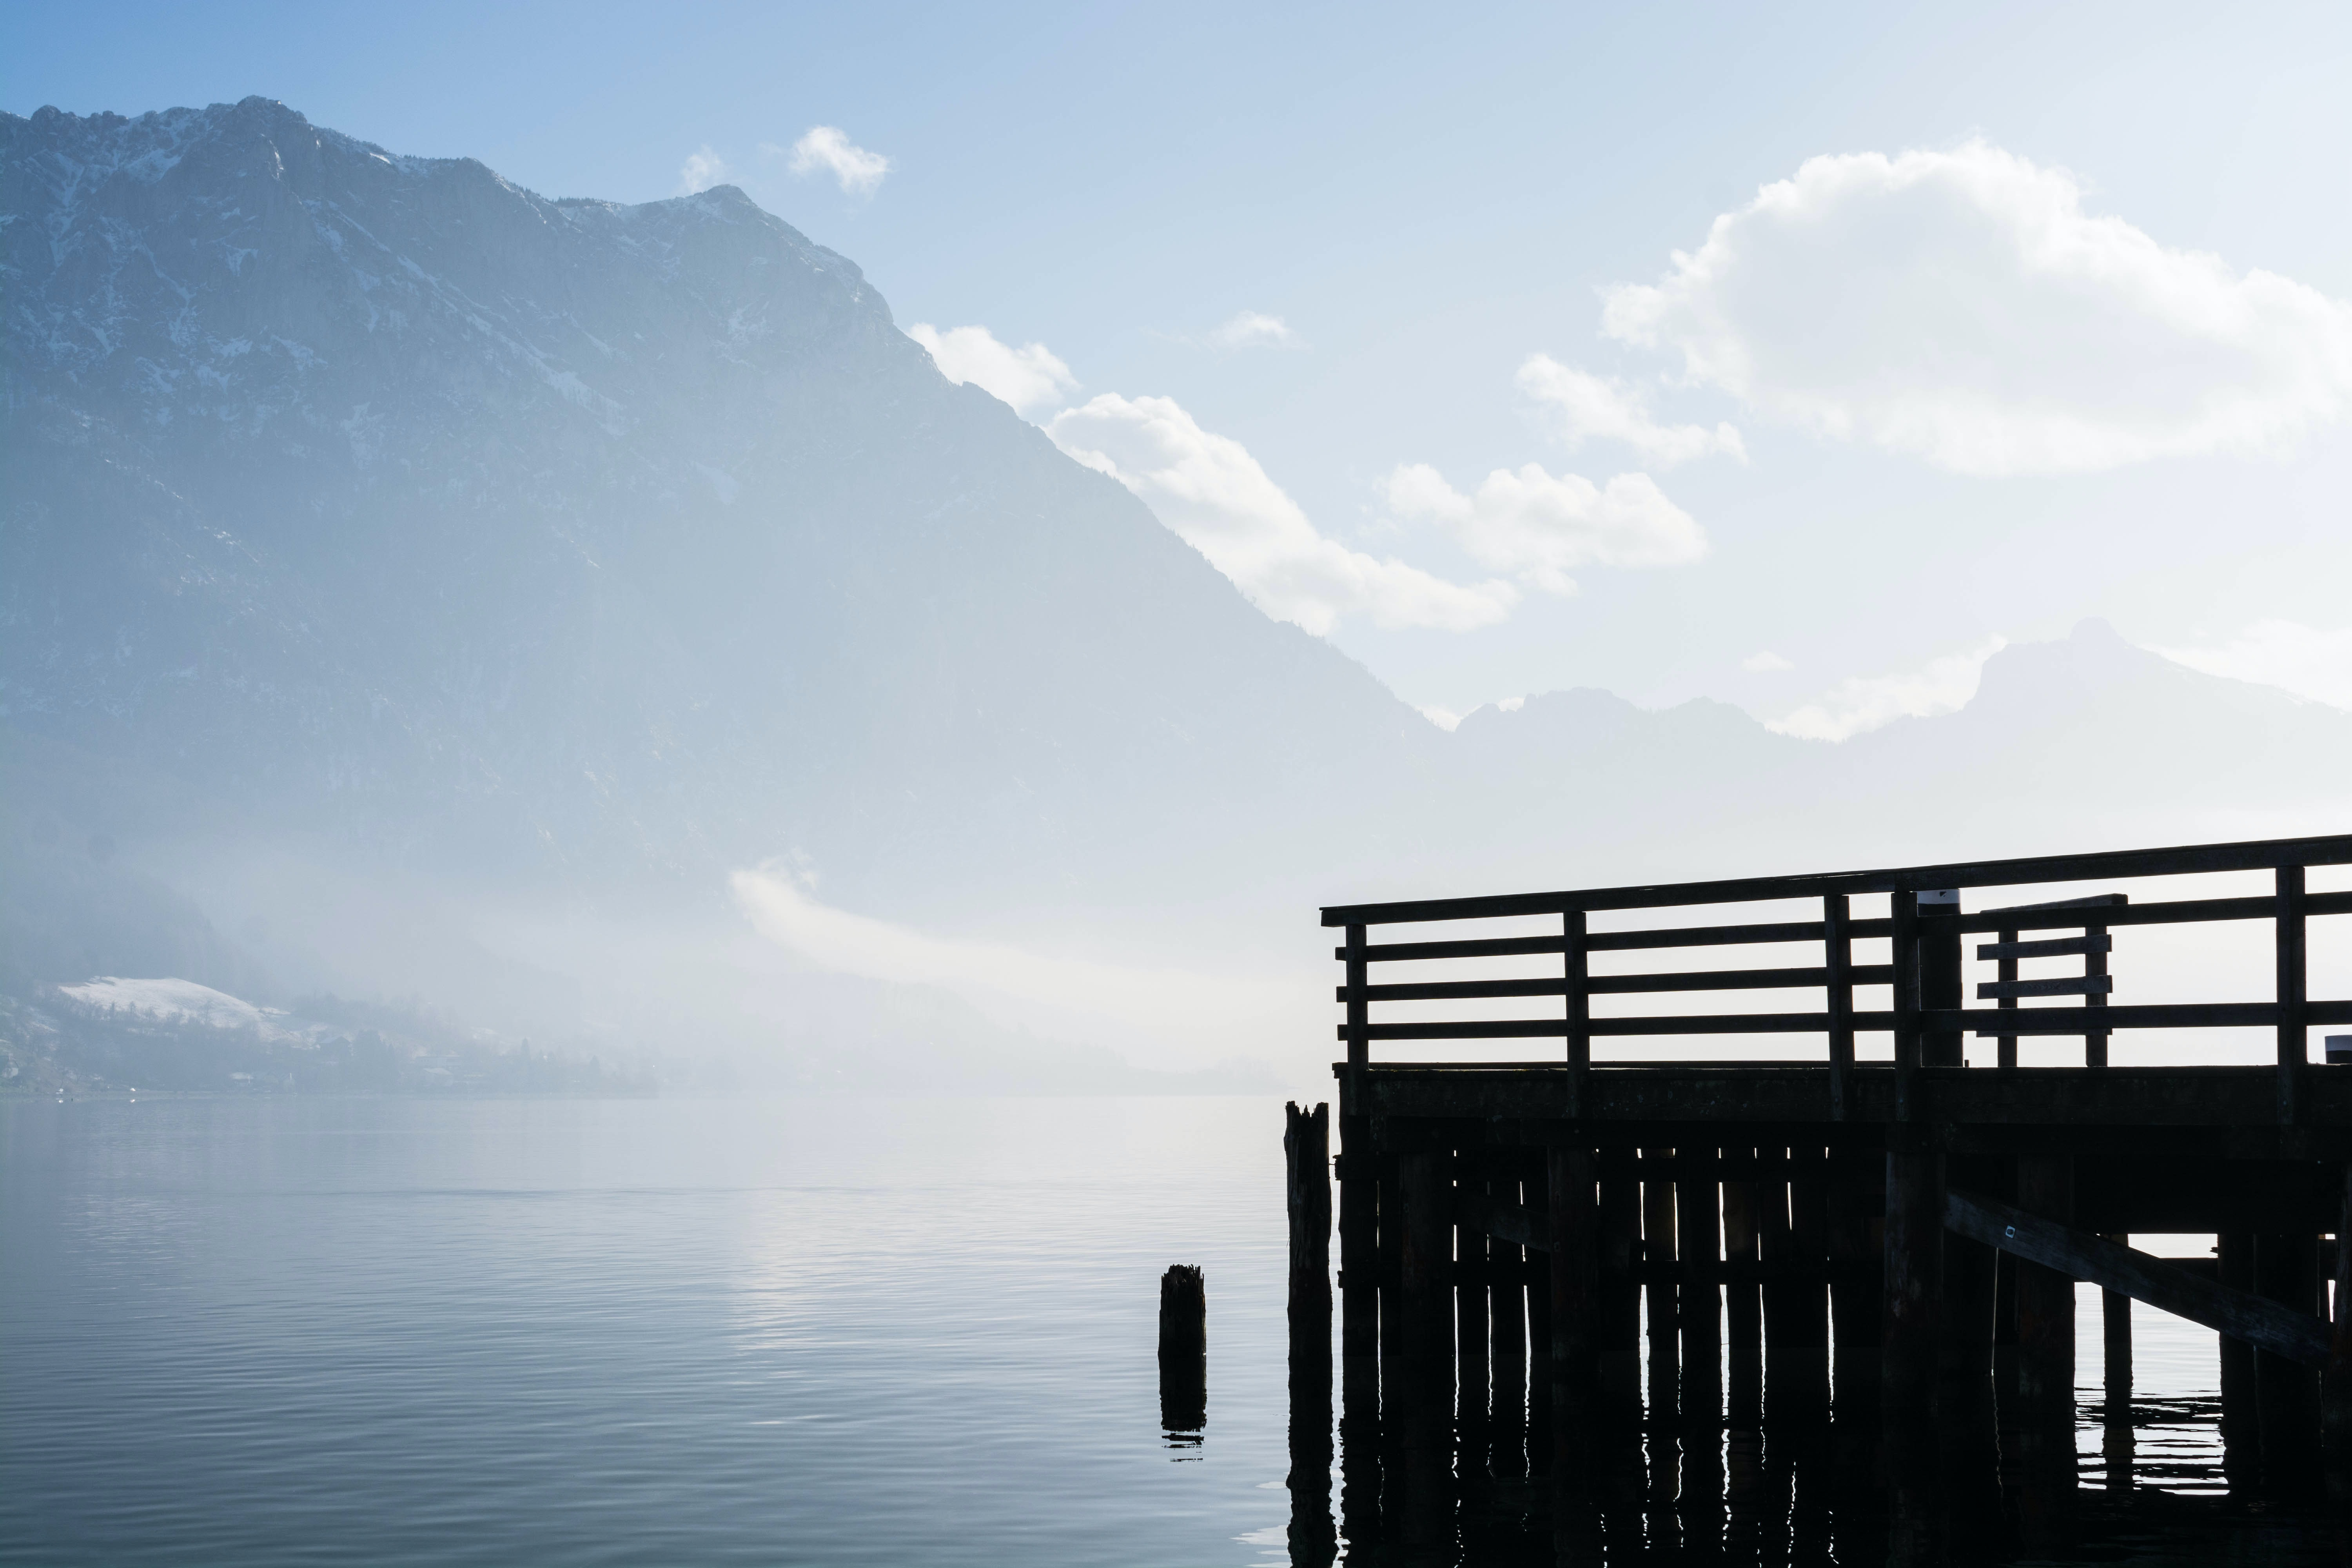 A pier in Toskana Park Gmunden on the water